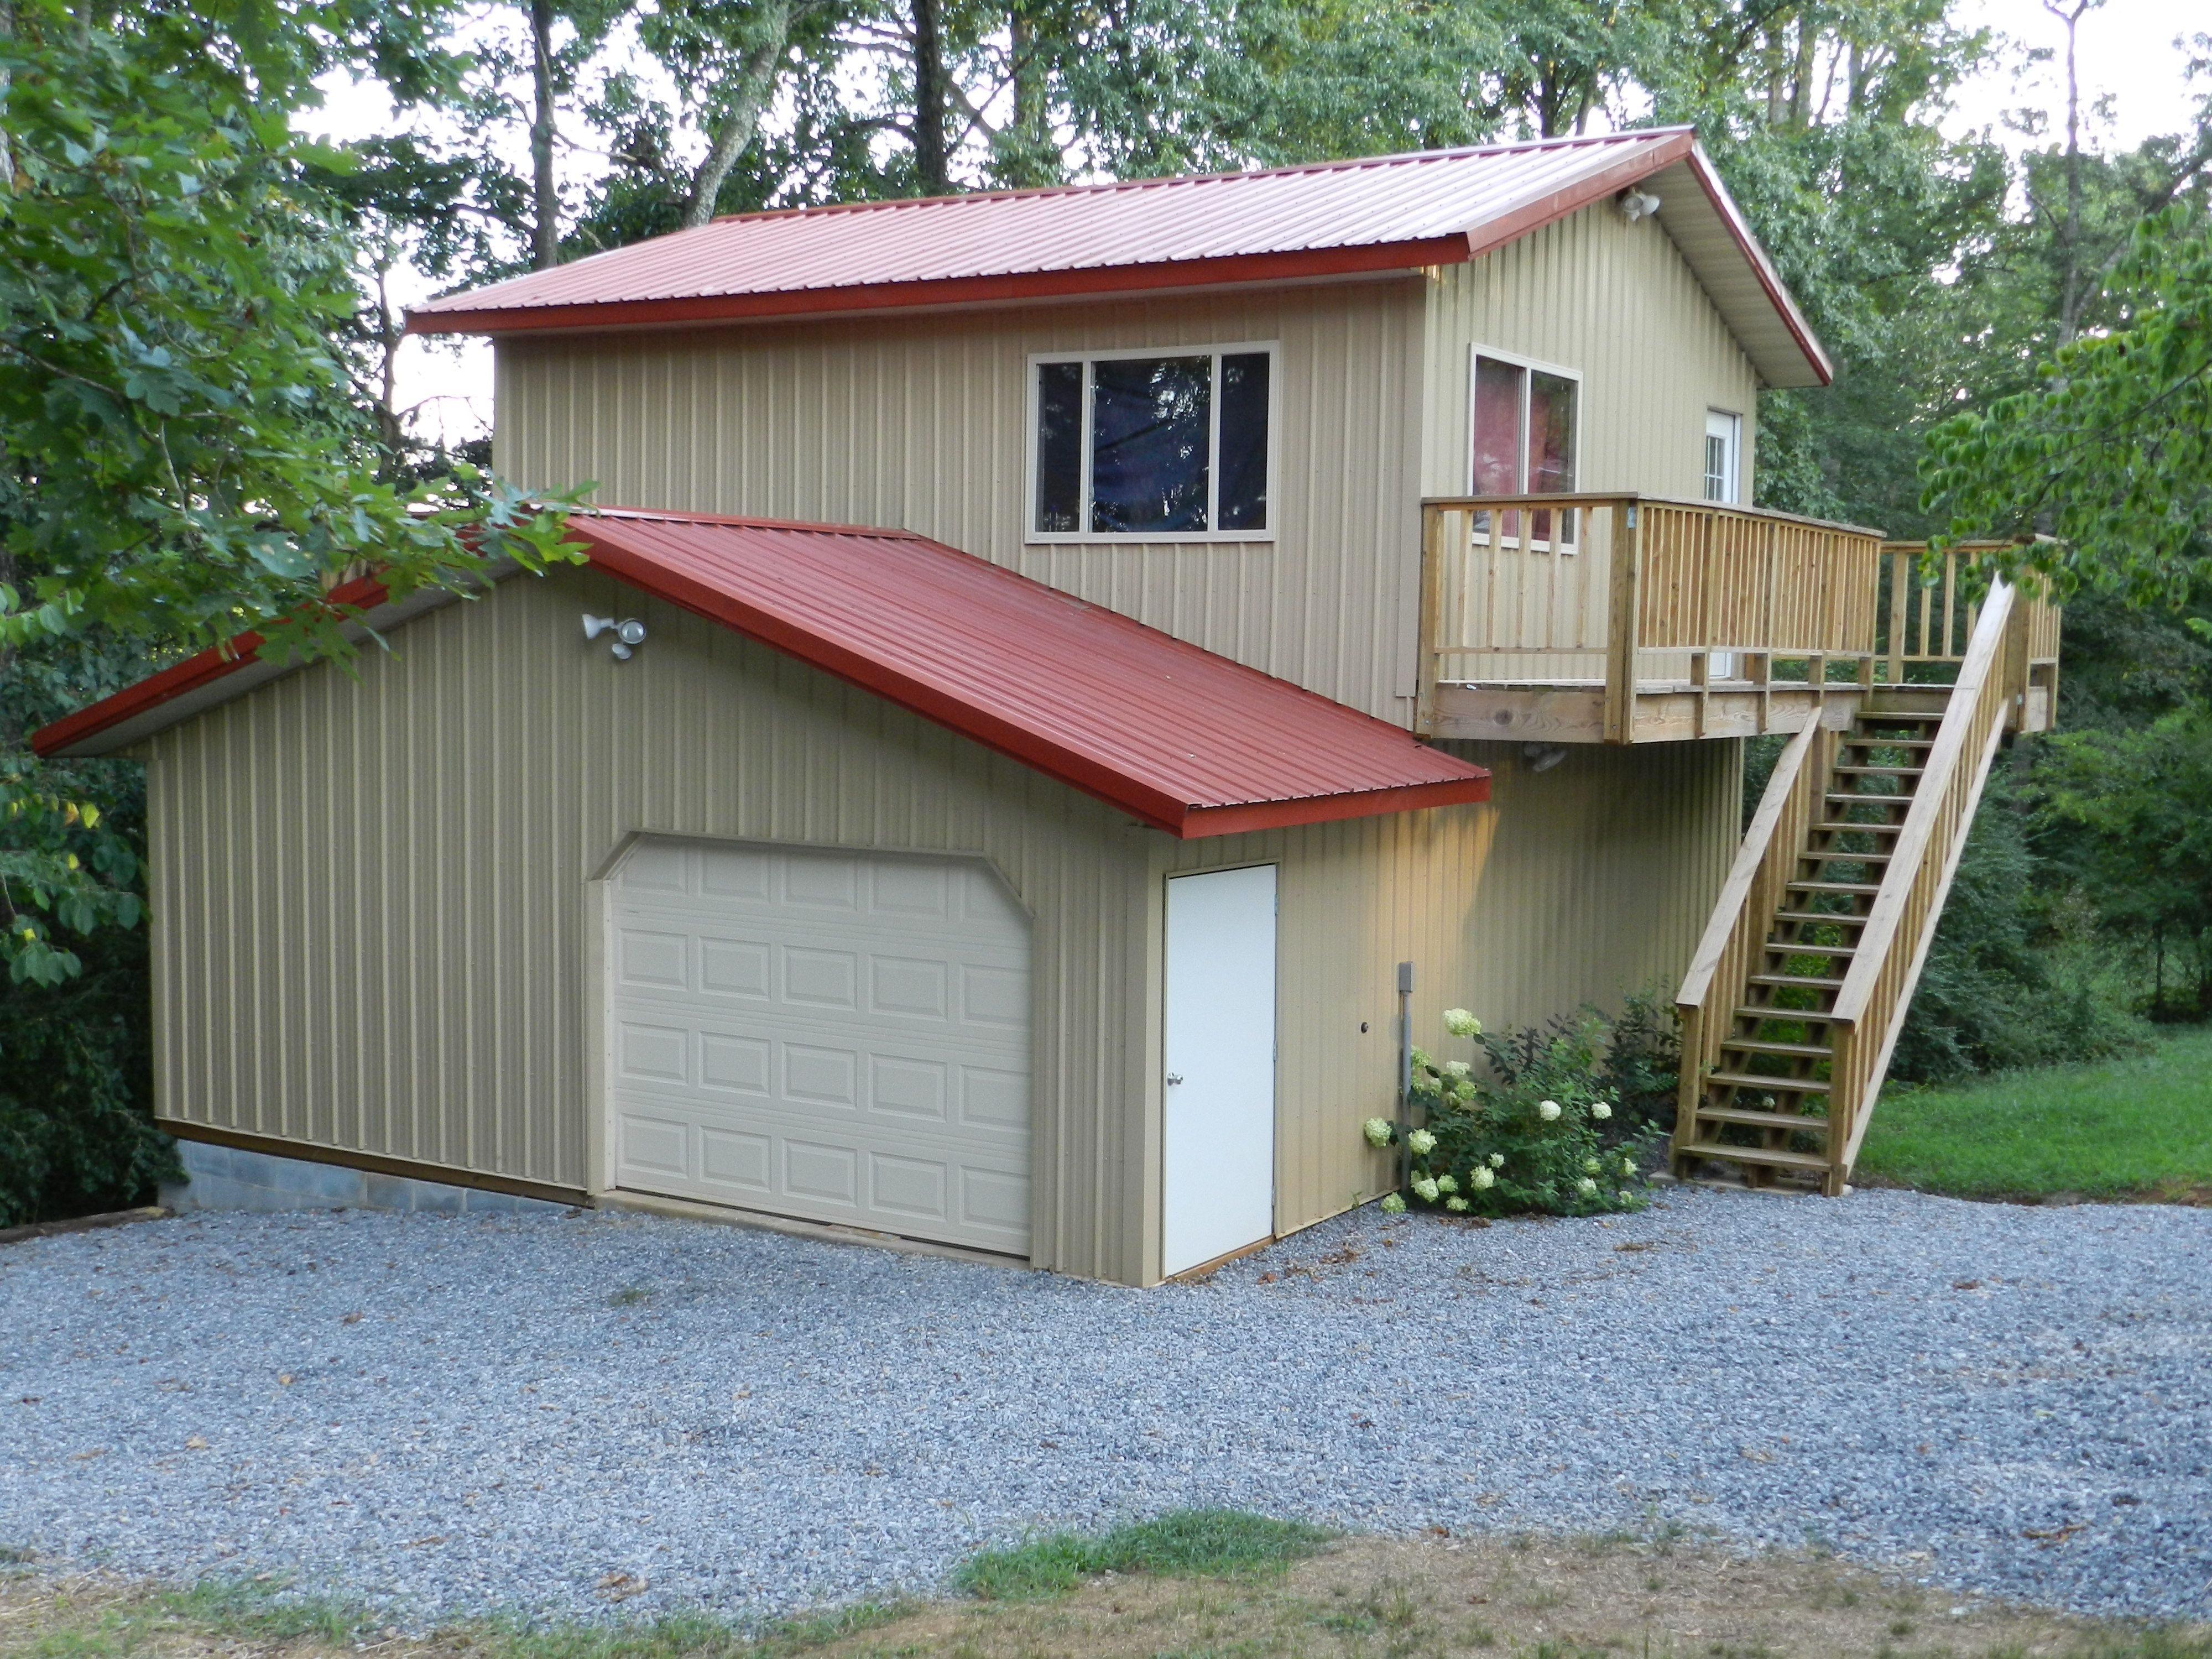 Barn living pole quarter with metal buildings you can for Design your own metal building home